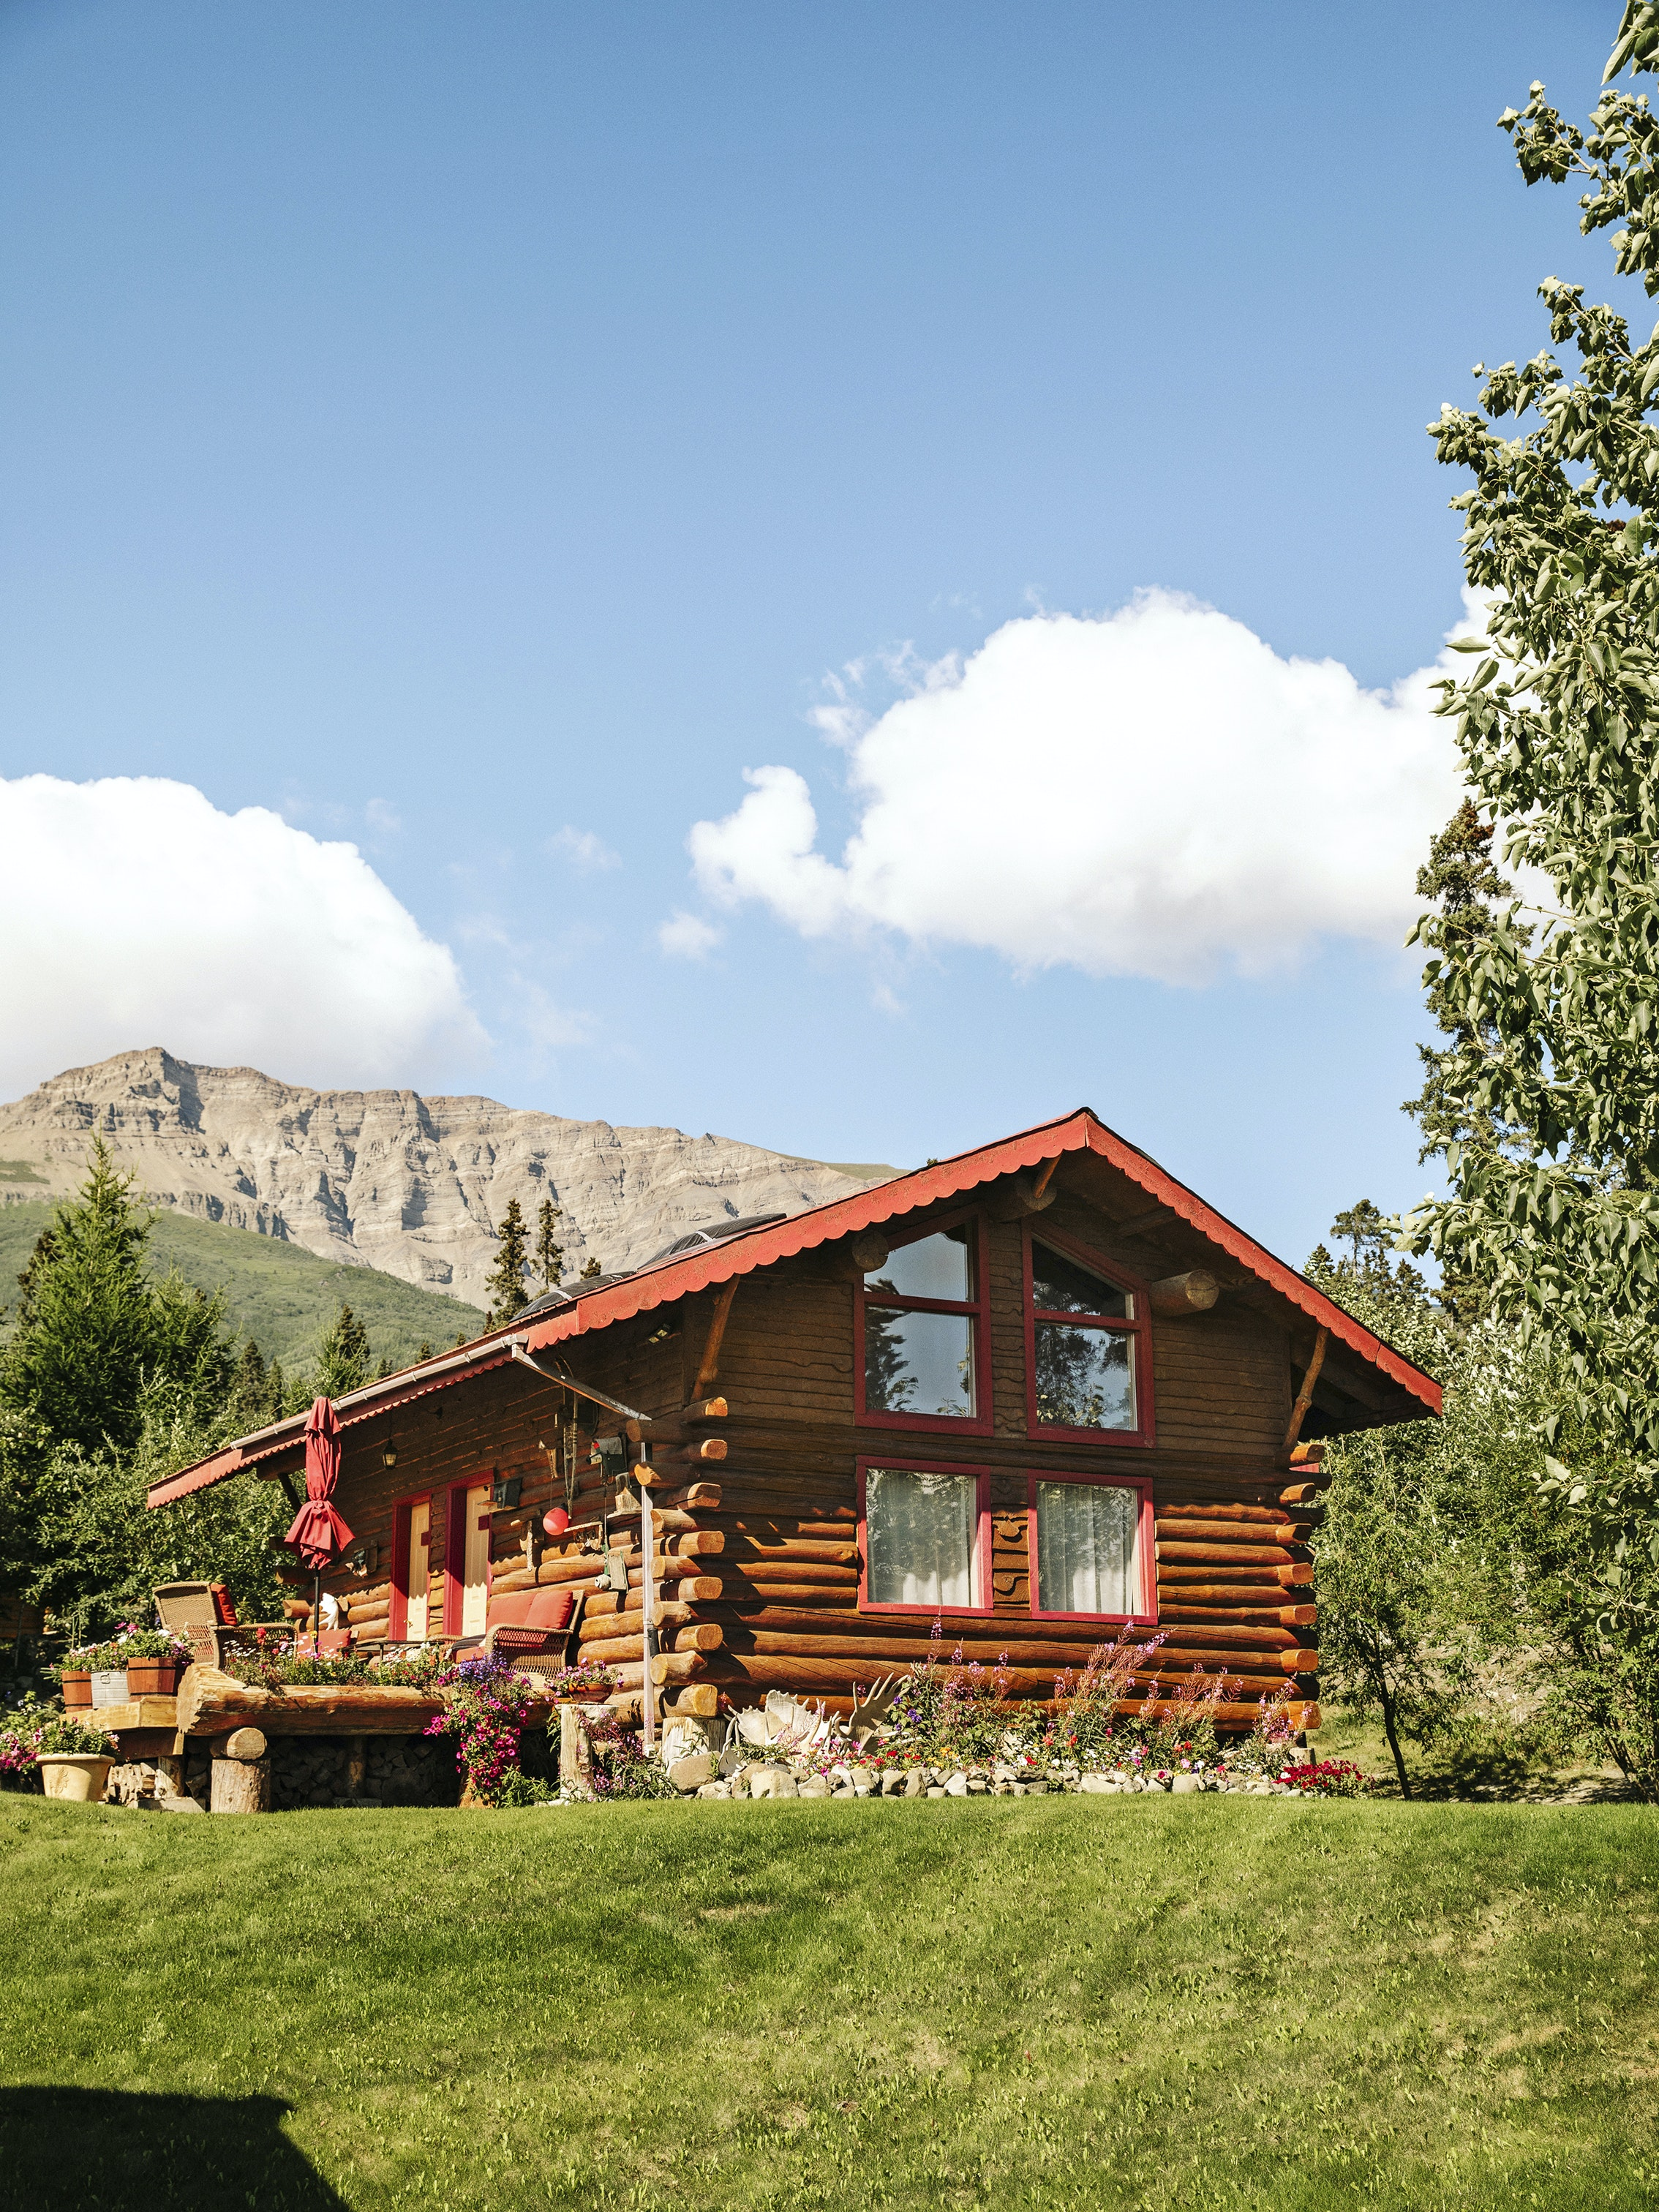 After flying in to Ultima Thule Lodge, guests stay in one of nine comfortably appointed log cabins.